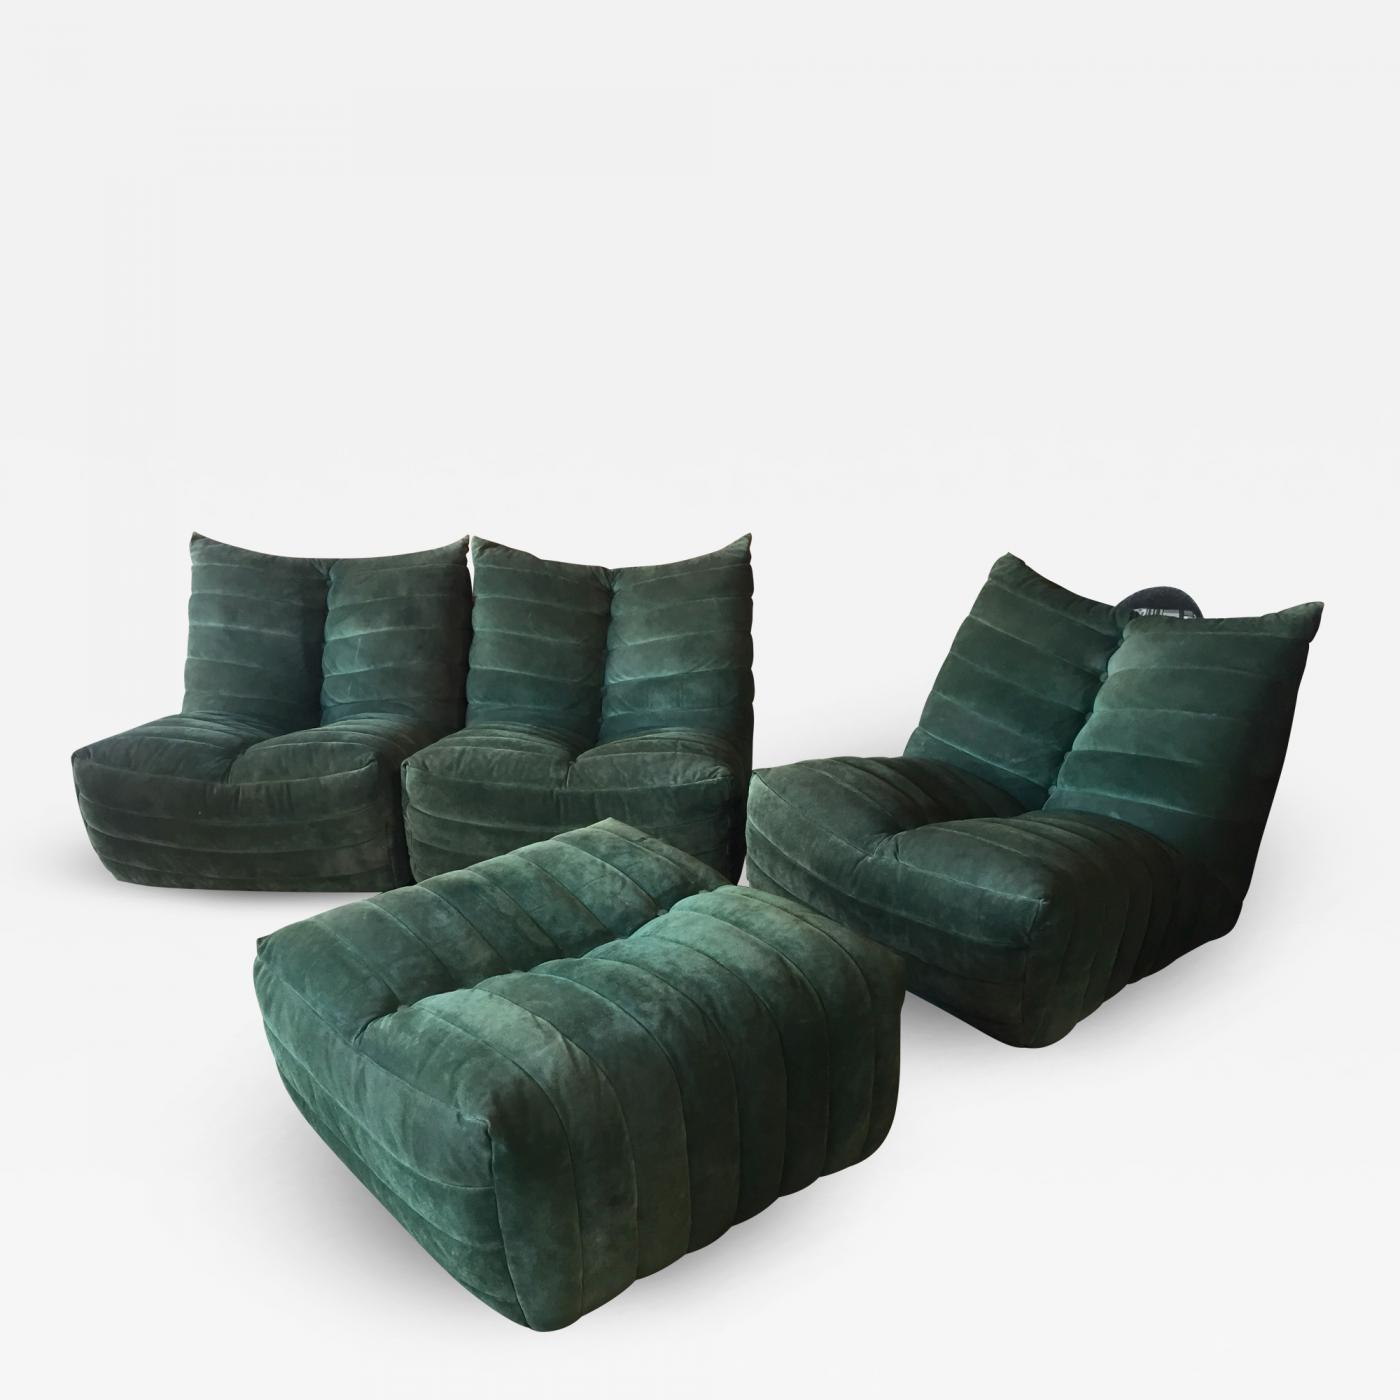 Fantastic Gianfranco Grignani Modular Green Sectional Sofa Giannone By Arch G Grignani For 7Salotti Italy Unemploymentrelief Wooden Chair Designs For Living Room Unemploymentrelieforg